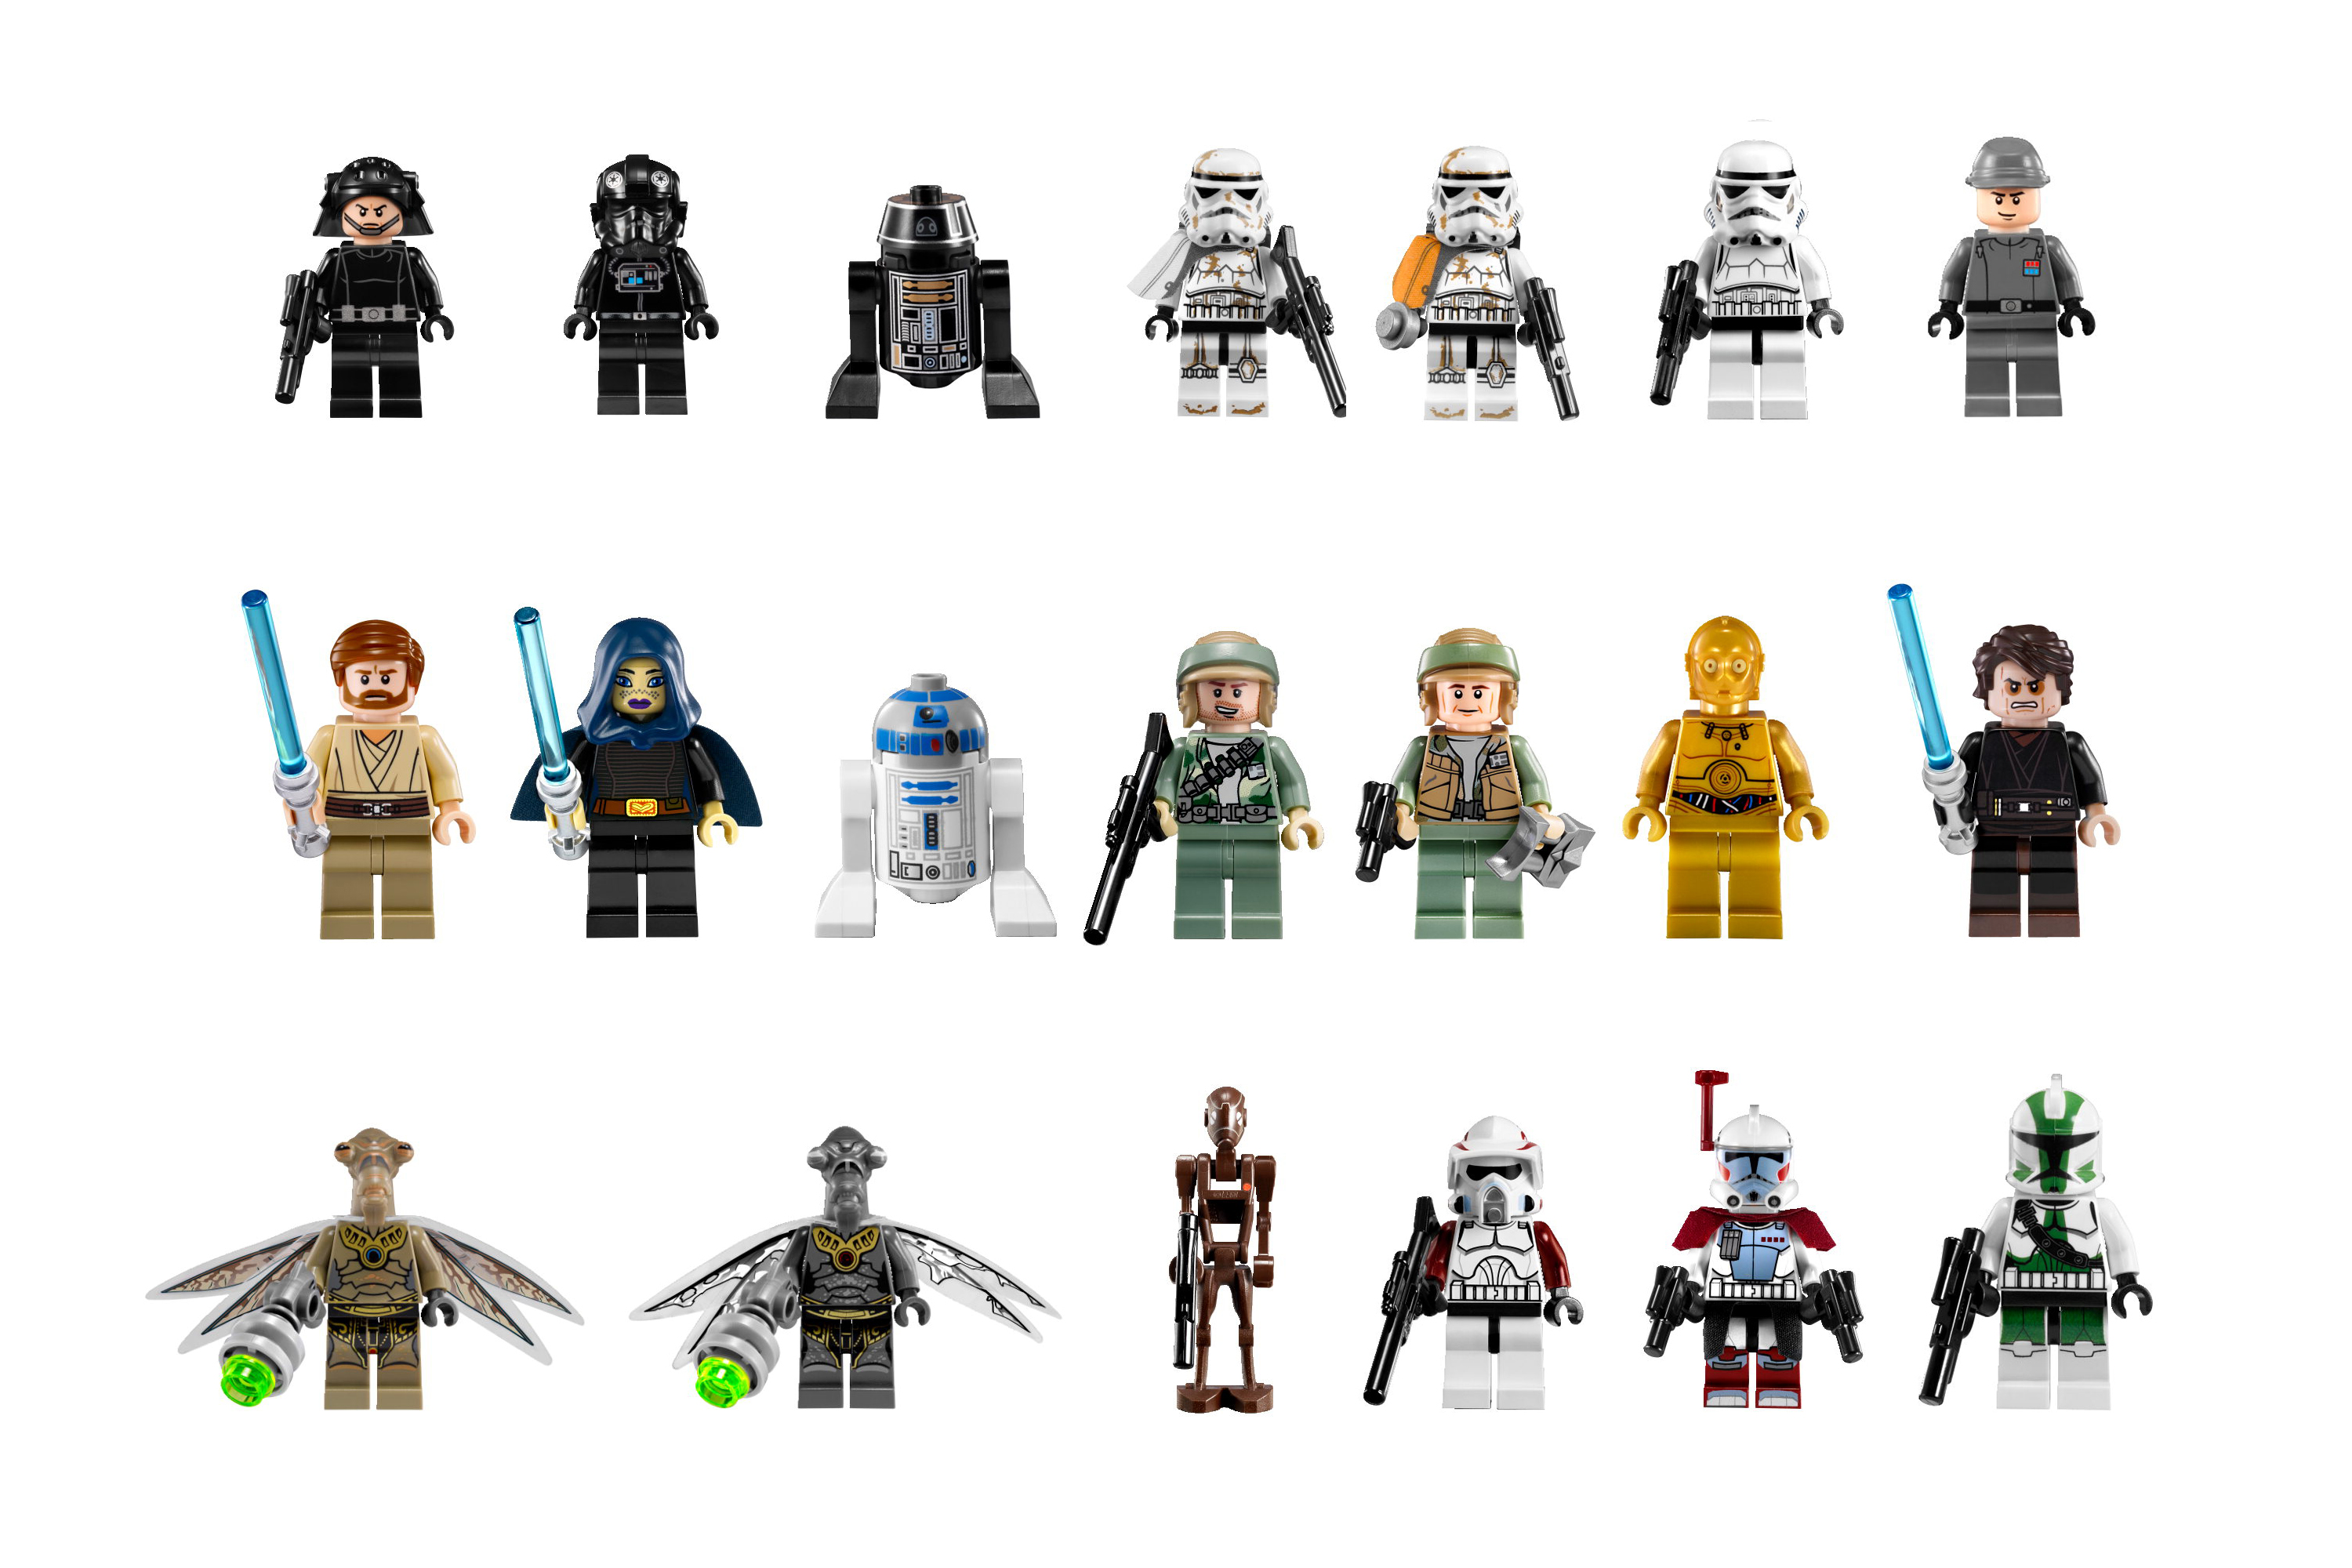 lego star wars minifigures brick toys lego blog. Black Bedroom Furniture Sets. Home Design Ideas